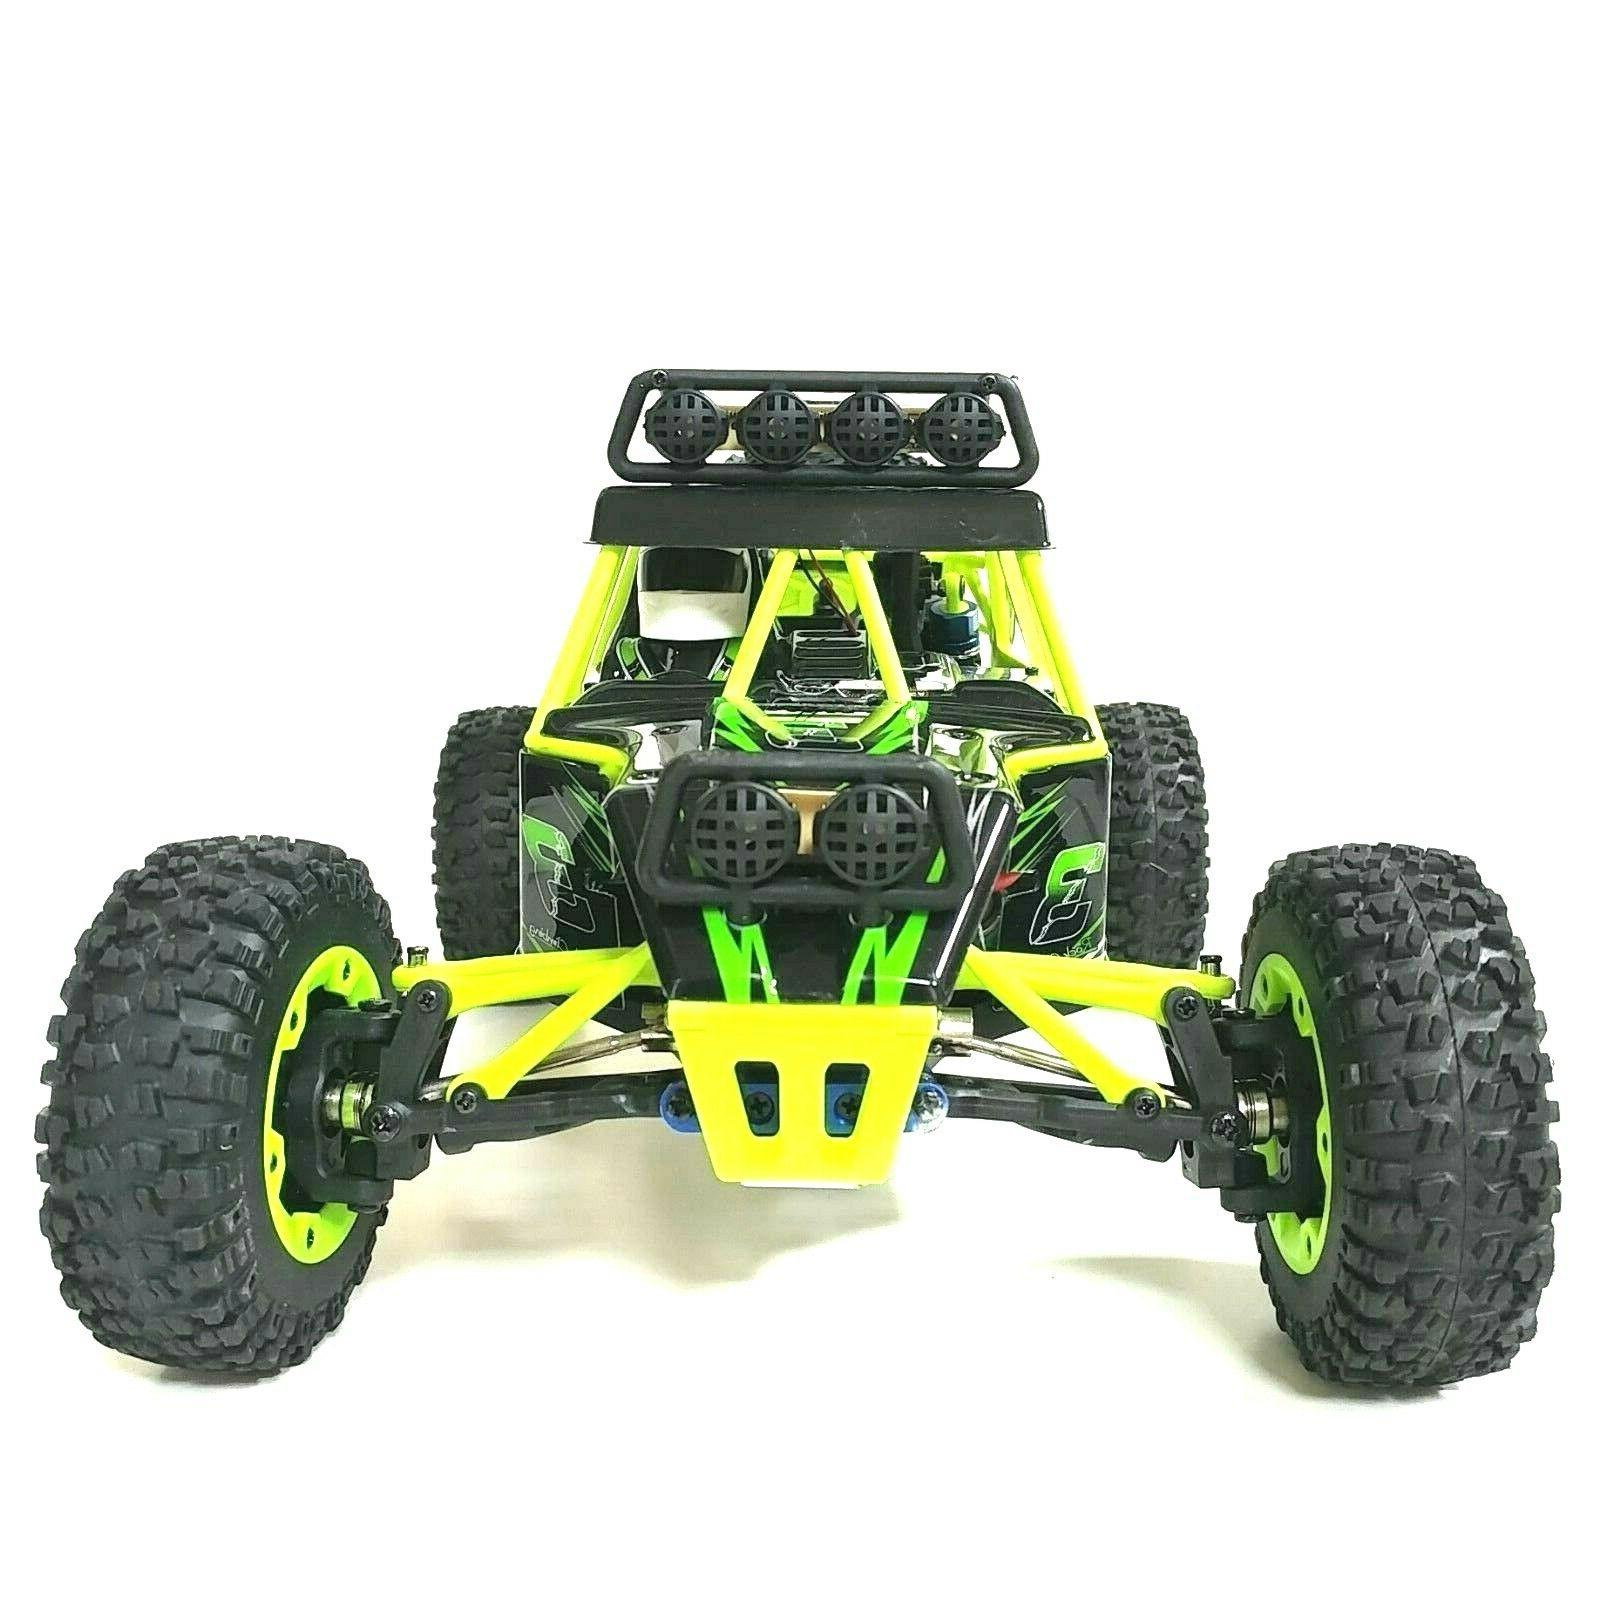 Wltoys RTR Crawler/racer. FREE & LOWEST in